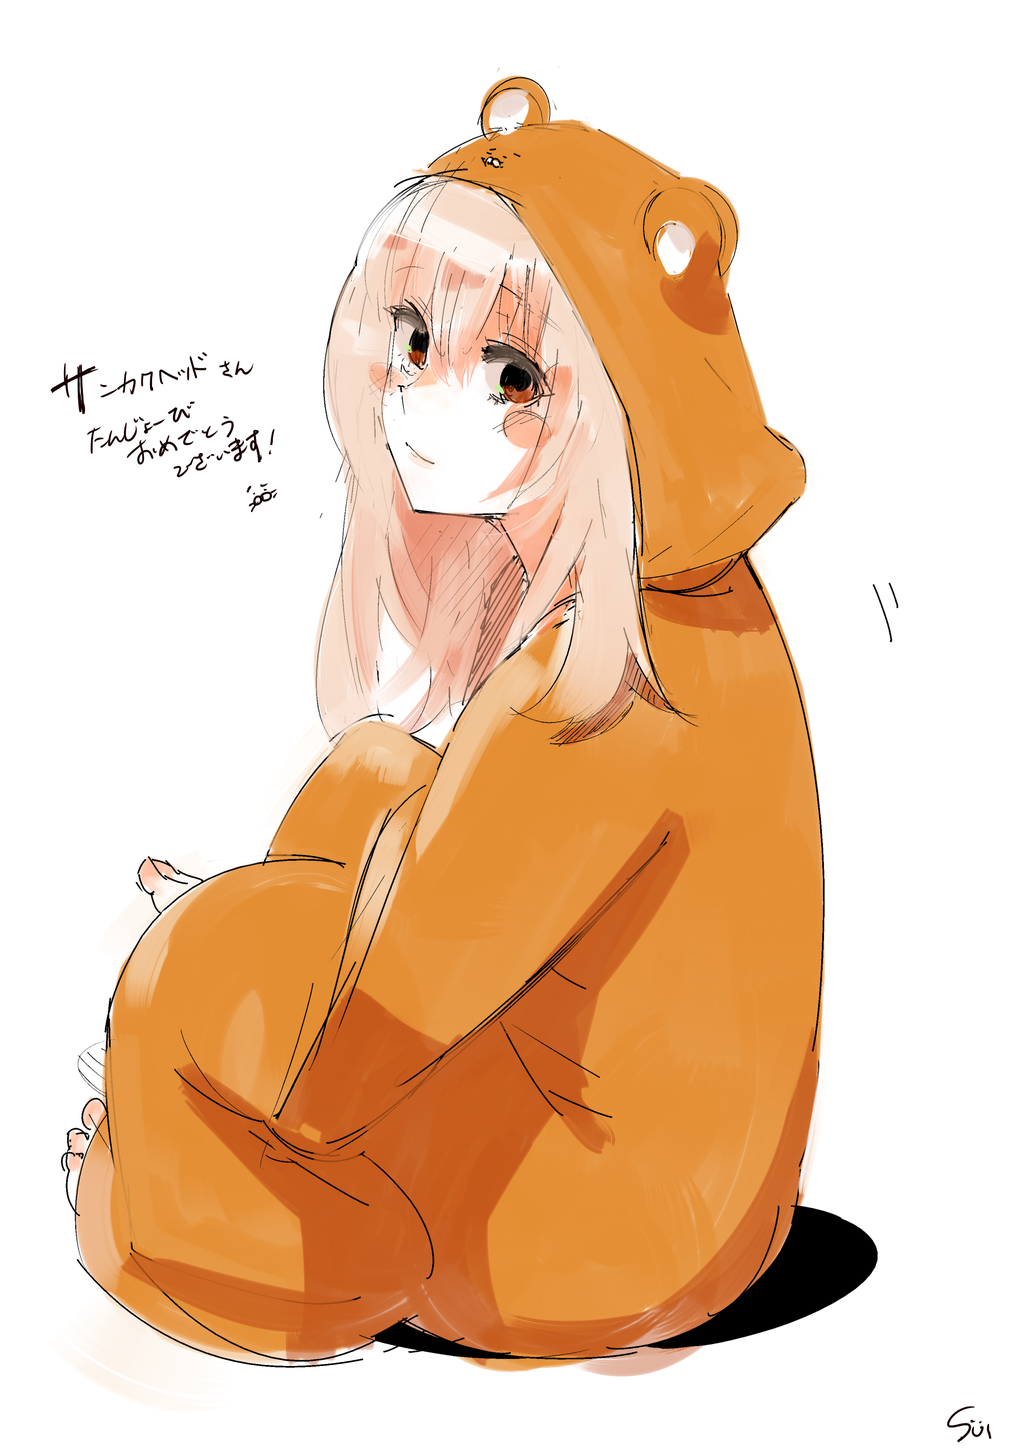 Himouto Umaru chan sketch by tokyo ghoul author